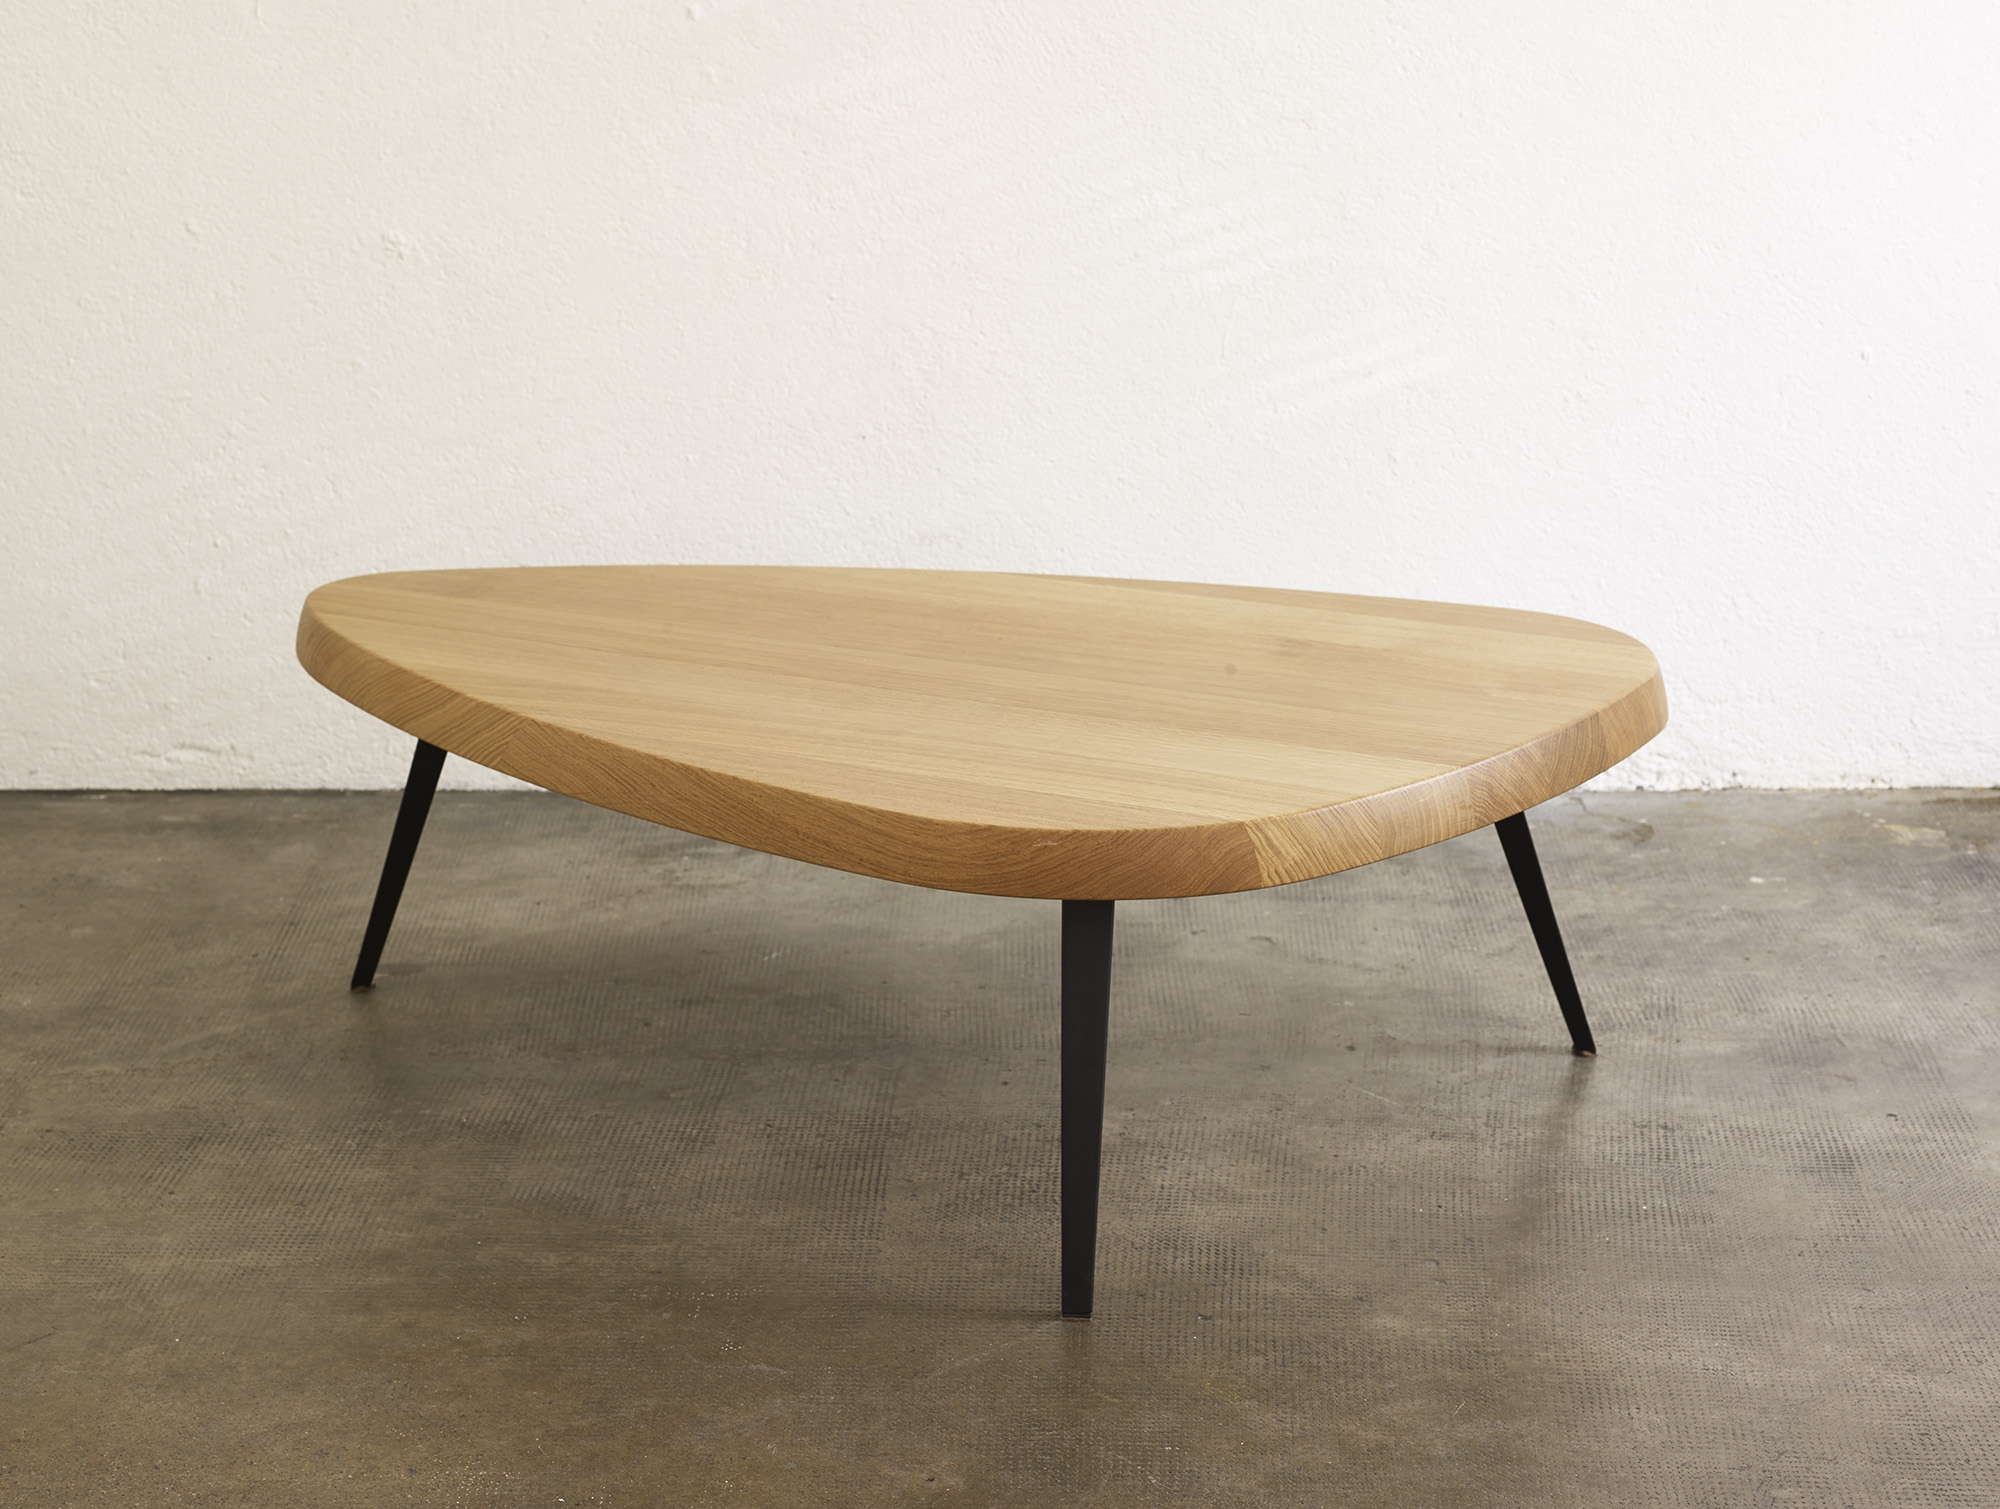 table-basse-527-de-charlotte-perriand-ed-cassina-image-01